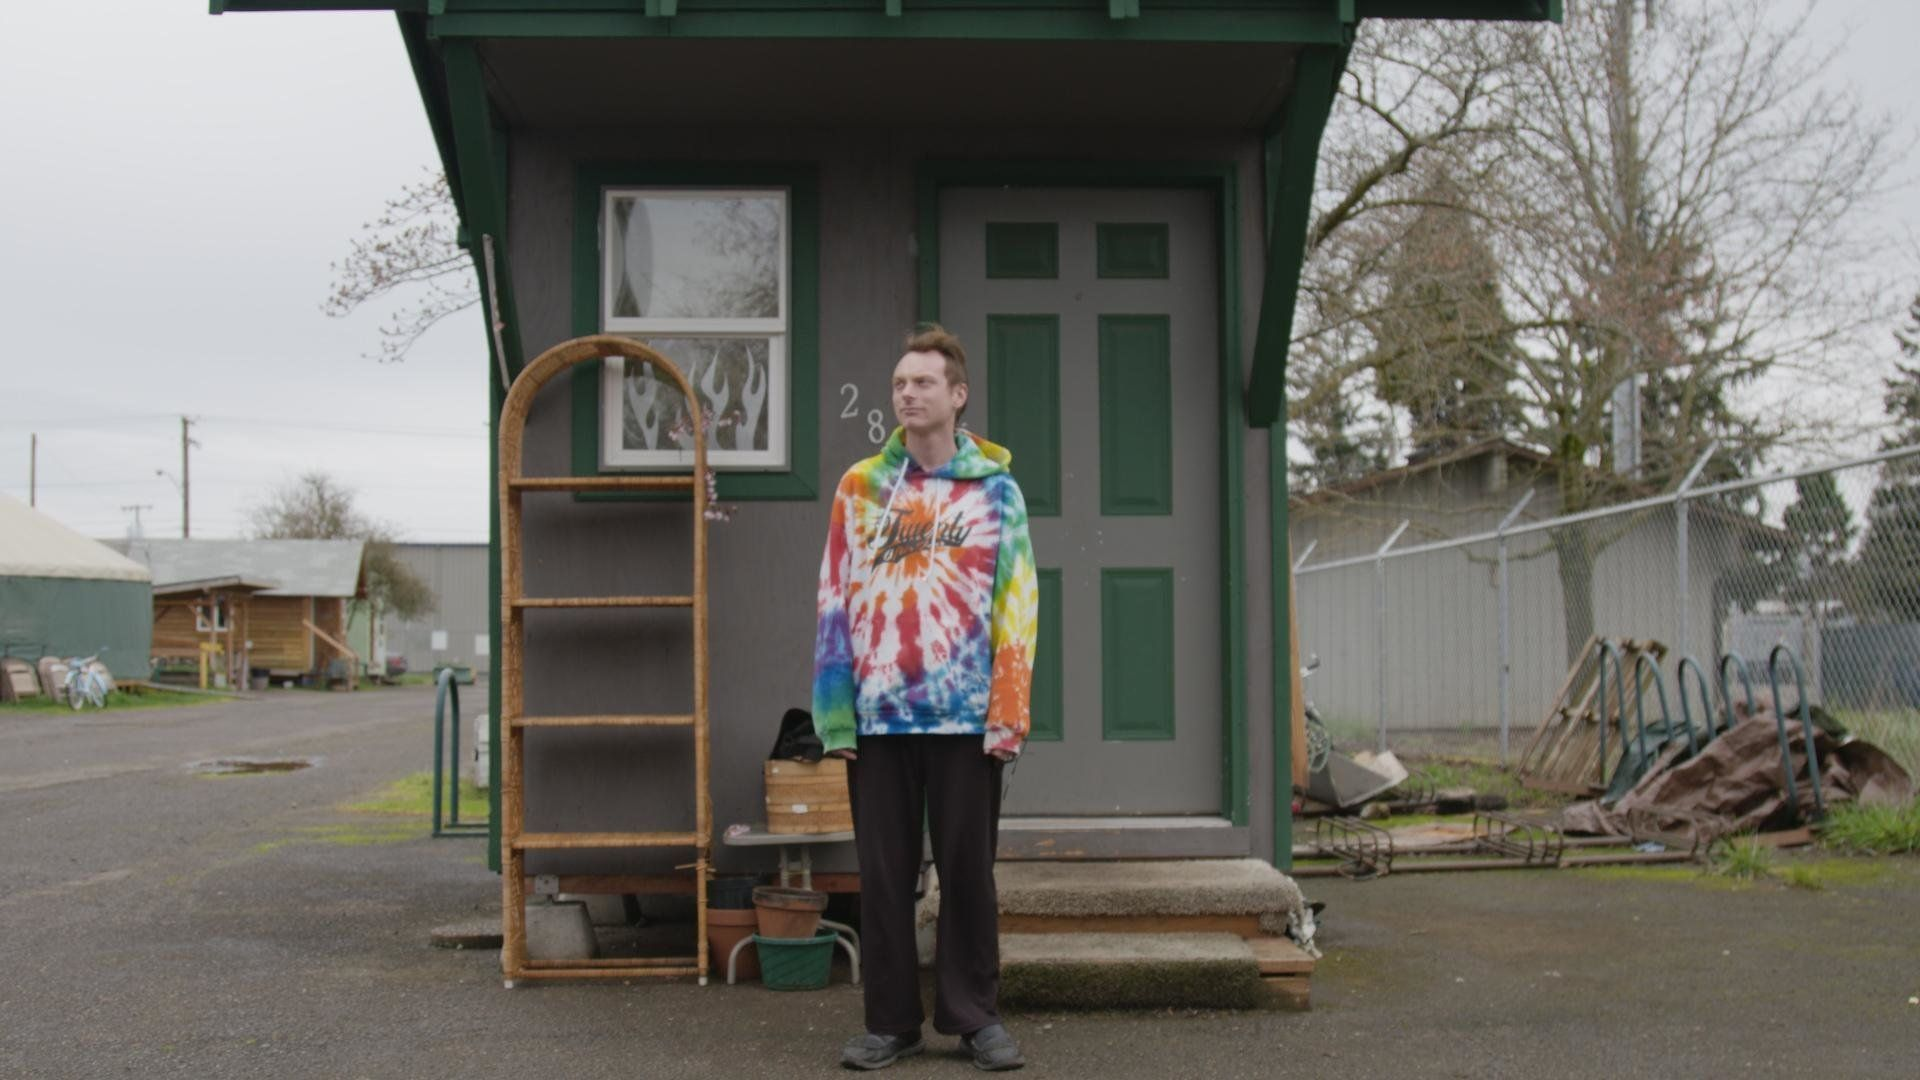 This Tiny Home Community In Oregon Is Bringing Shelter And Hope To The Homeless